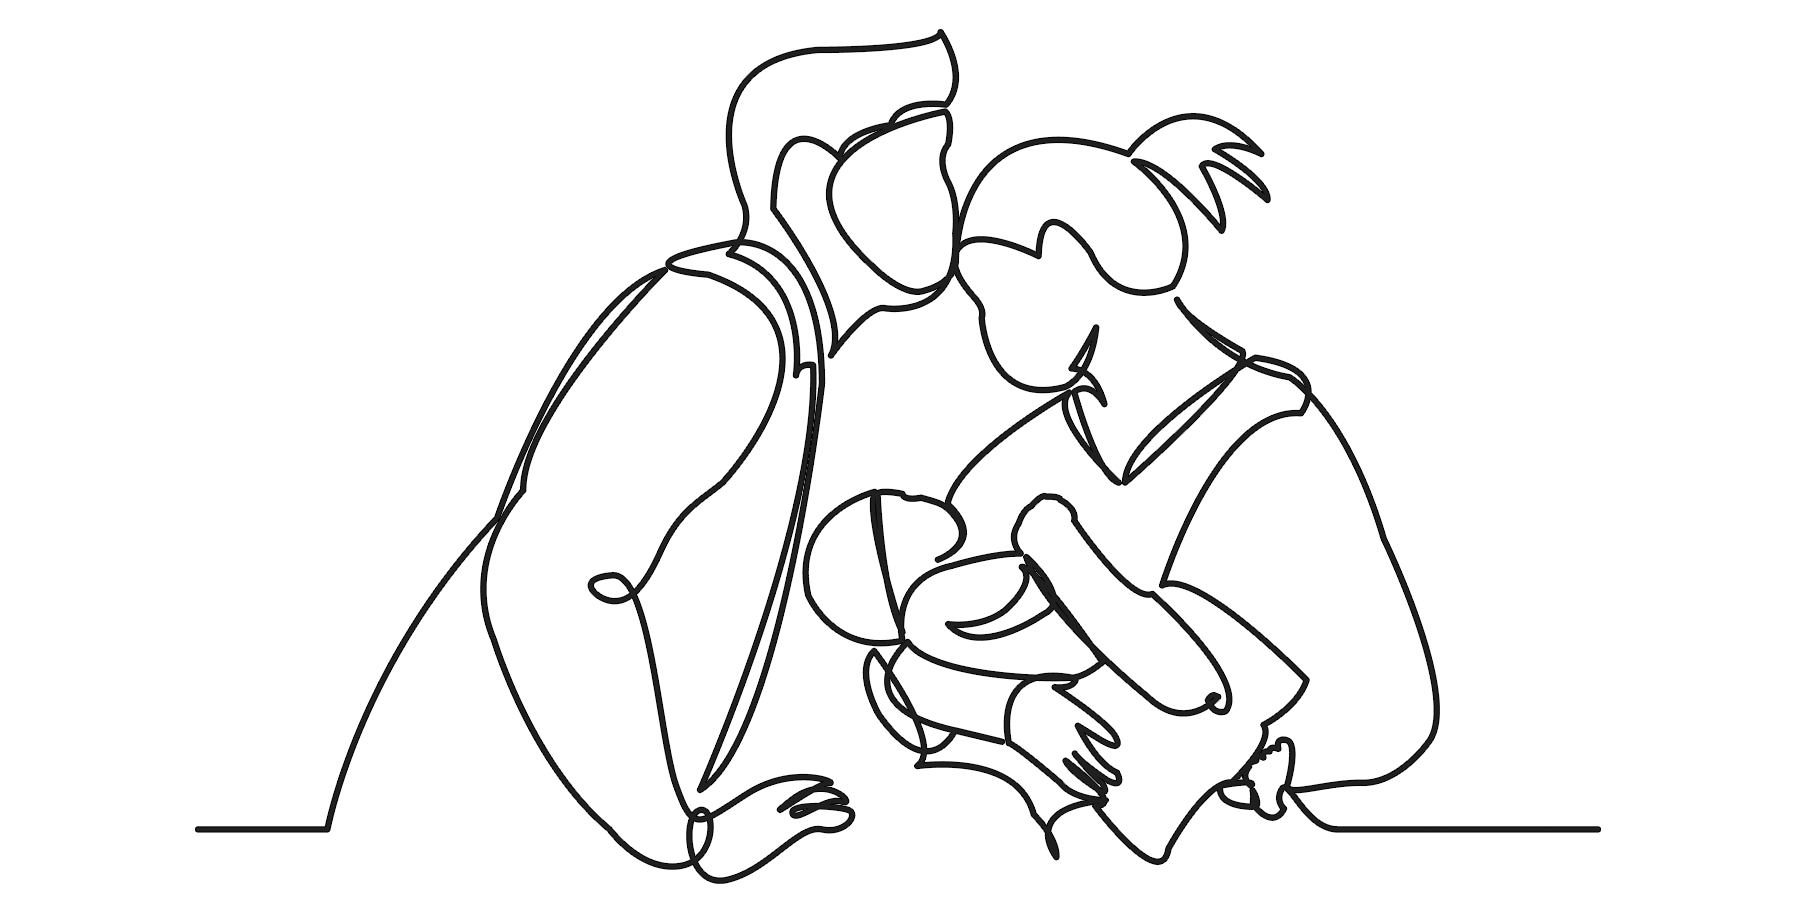 Illustration of father, mother and baby cuddling